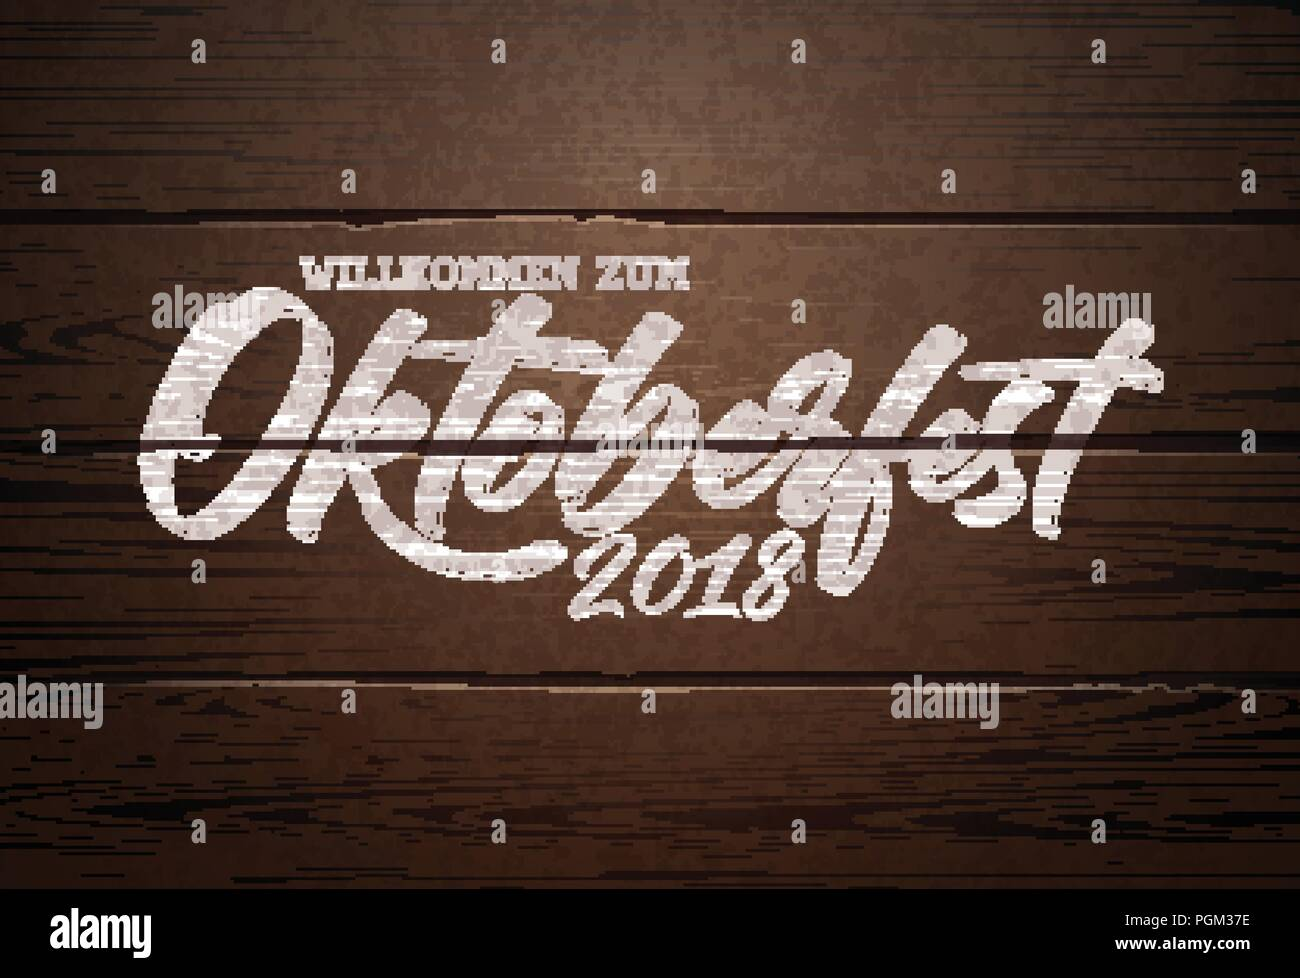 Oktoberfest Illustration with handwritten lettering on vintage wood background. Oktoberfest typography vector design for greeting card, banner, flyer, invitation or promotional poster. Celebration template for traditional German beer festival. - Stock Image